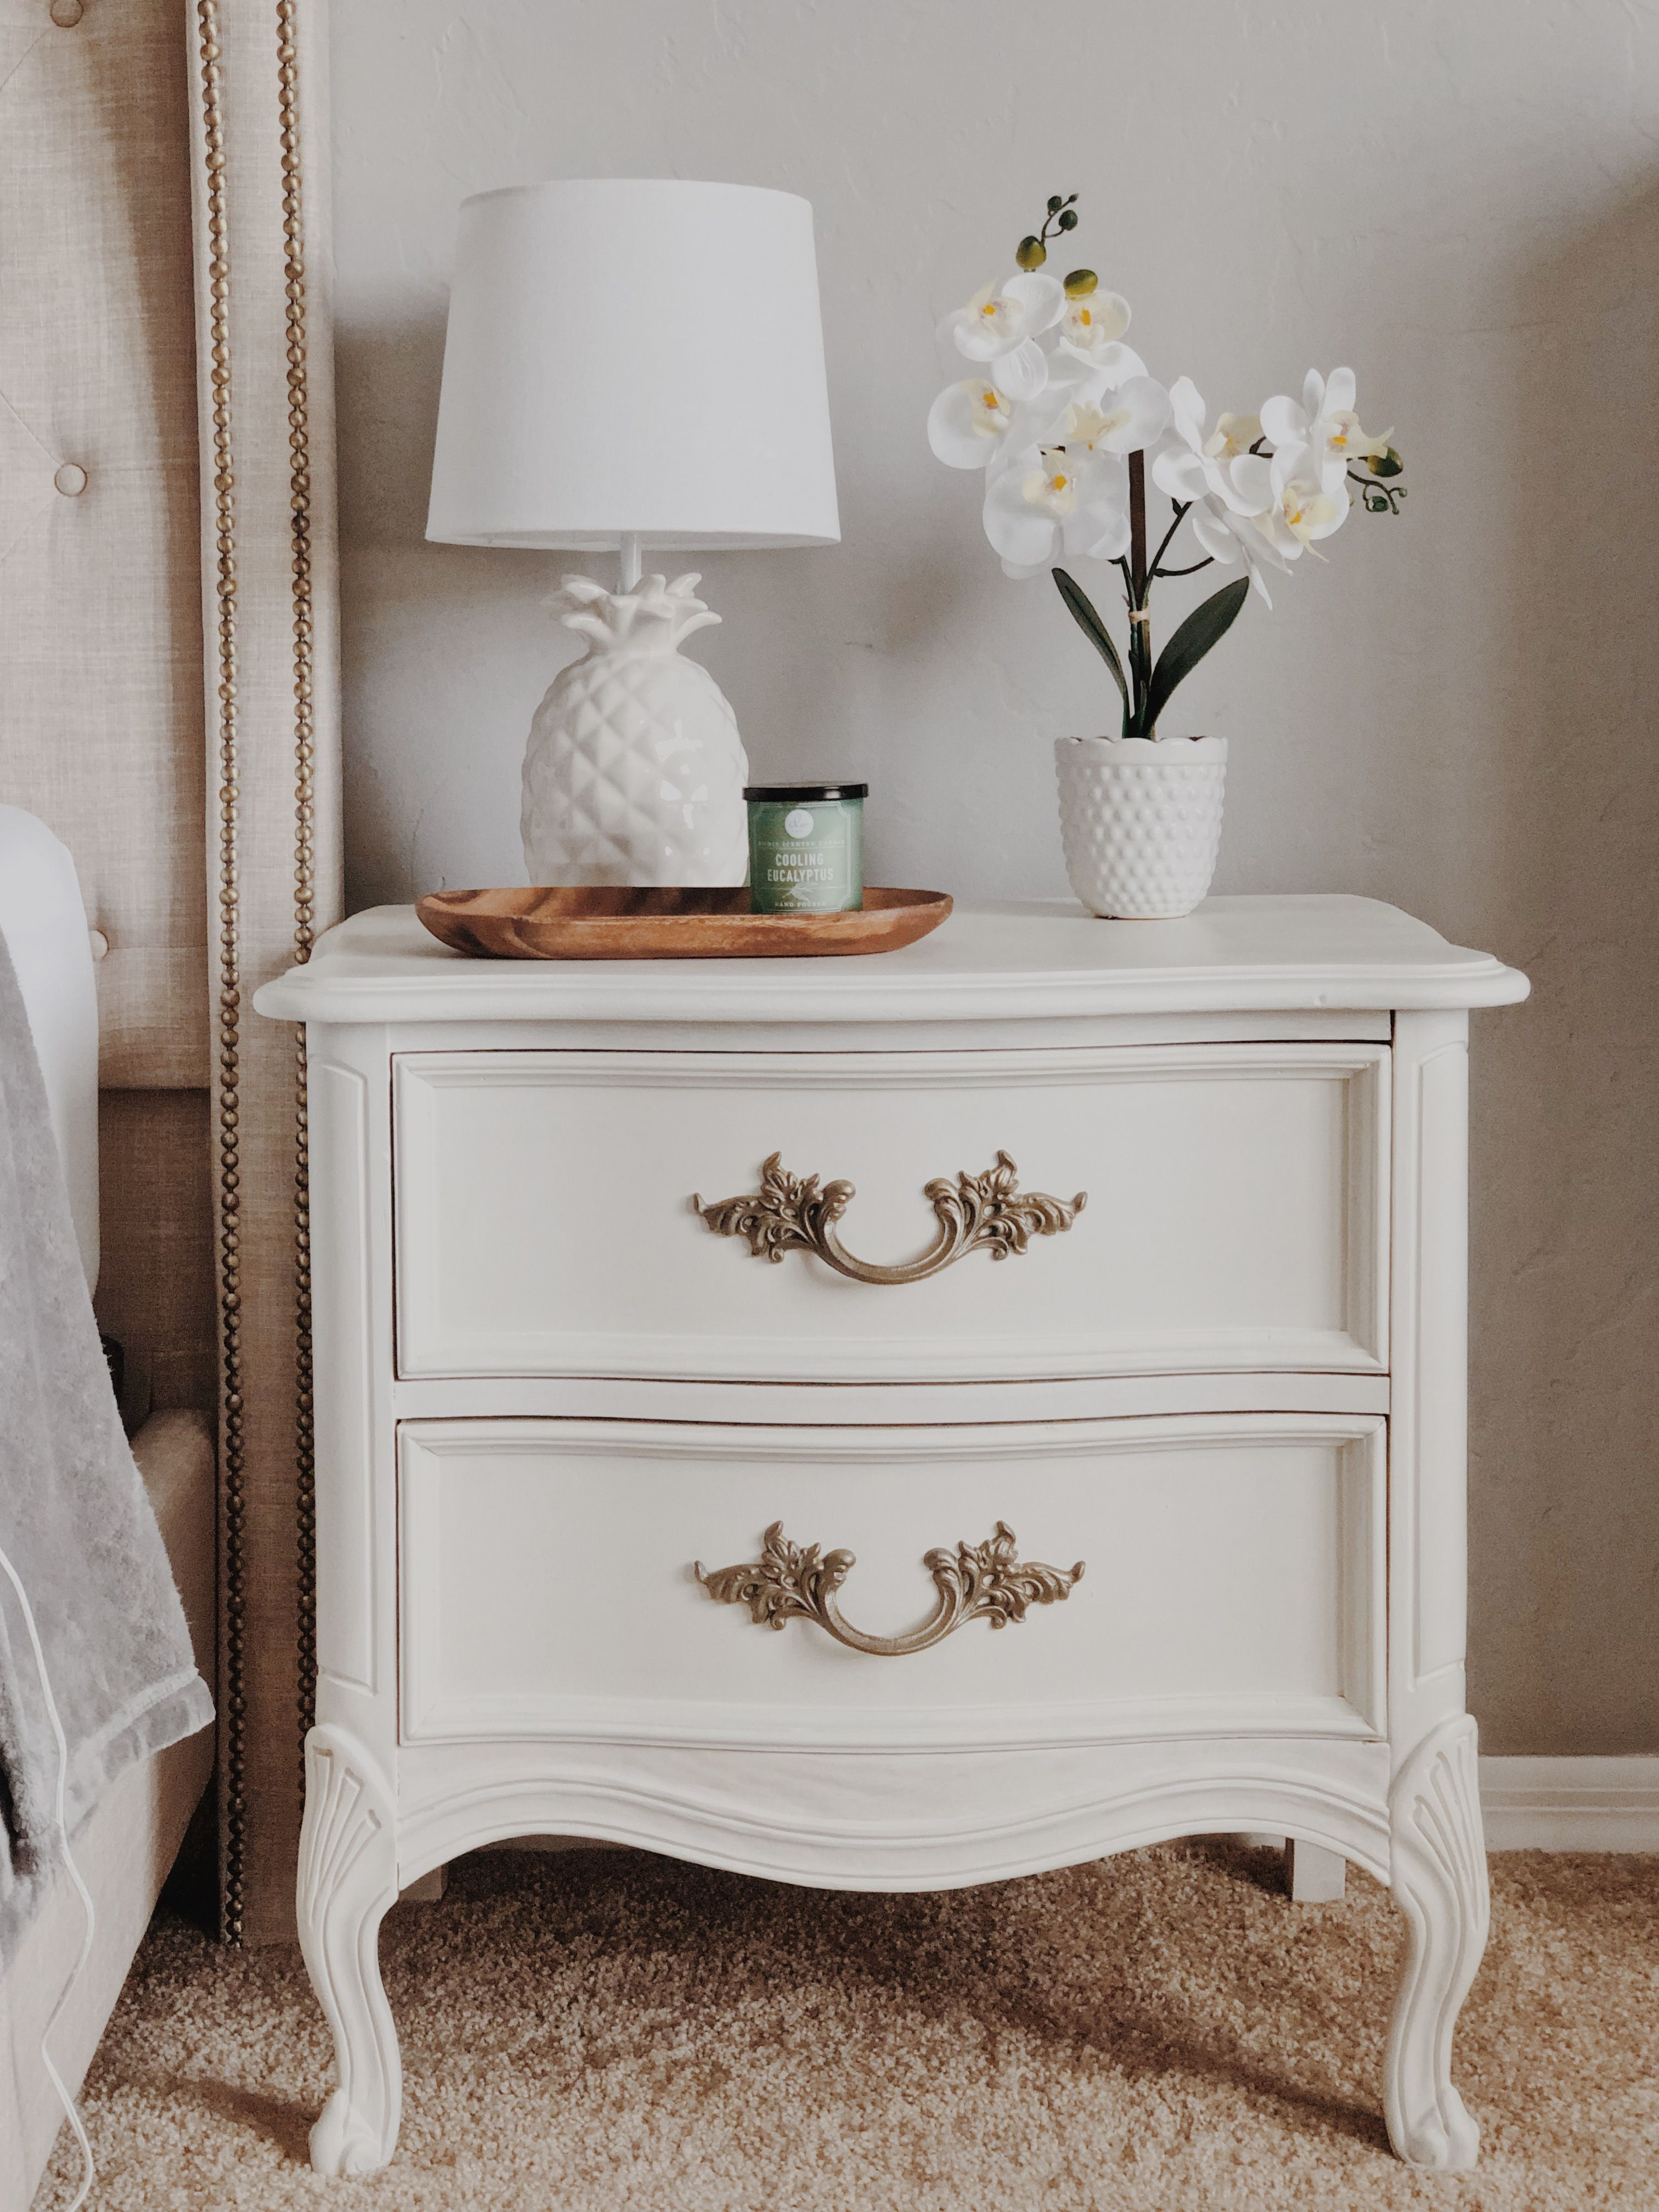 French Provincial Nightstand French Provincial Dresser Makeover French Provincial Decor Living Room French Provincial Nightstand [ 4032 x 3024 Pixel ]